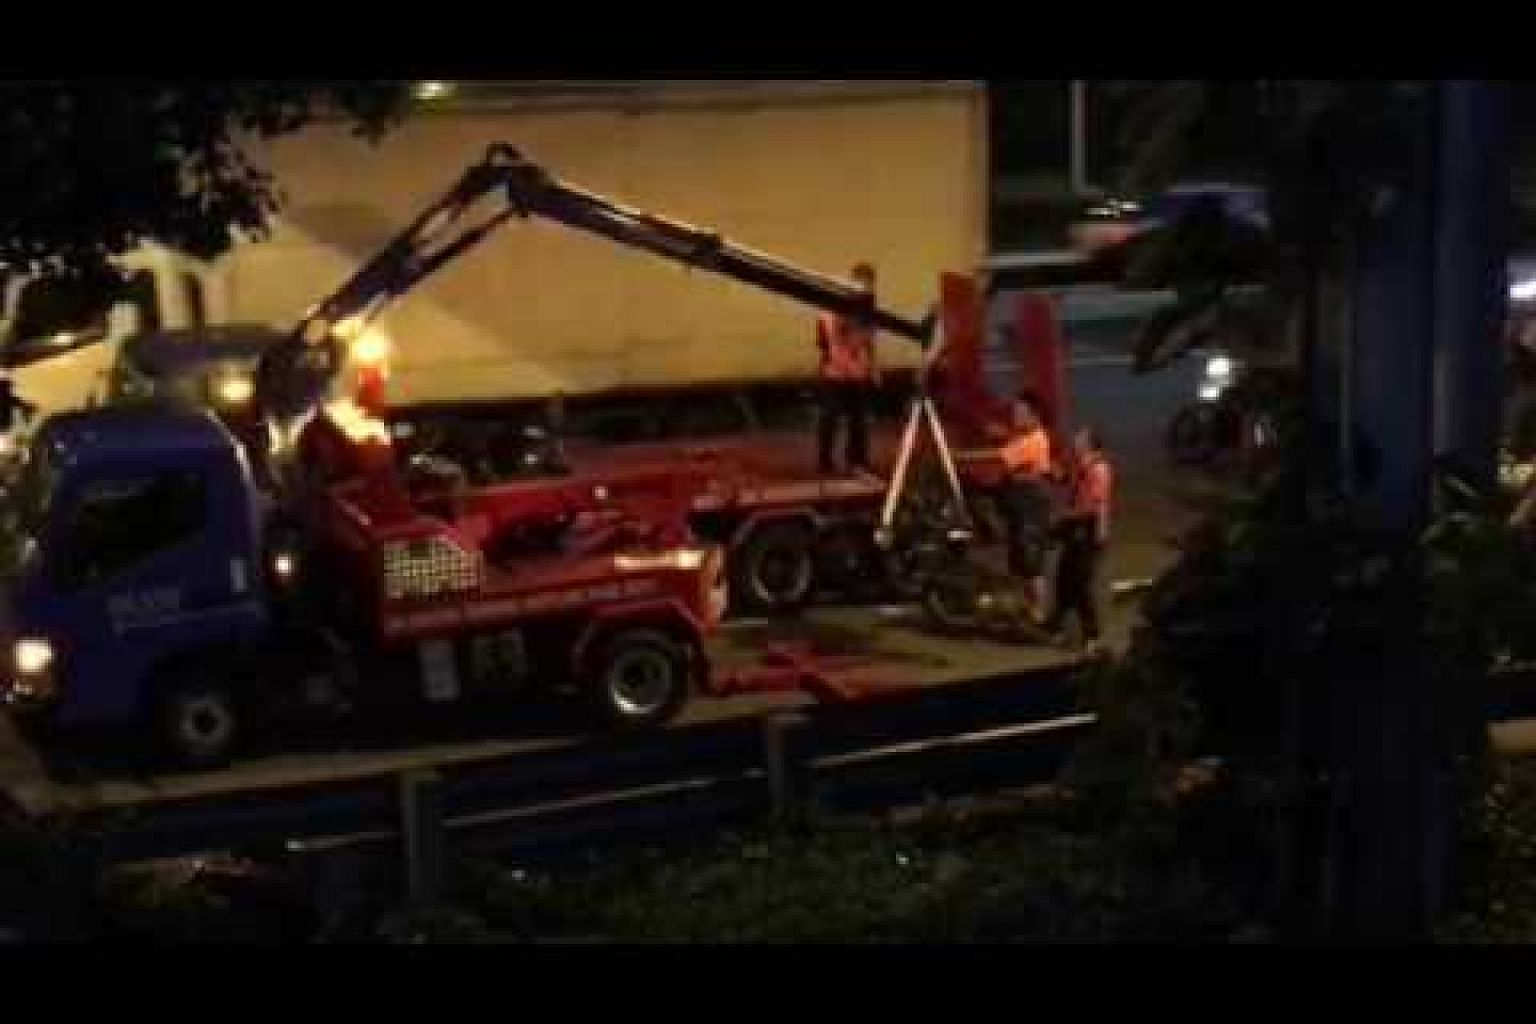 BKE accident: Motorcycle being removed from site